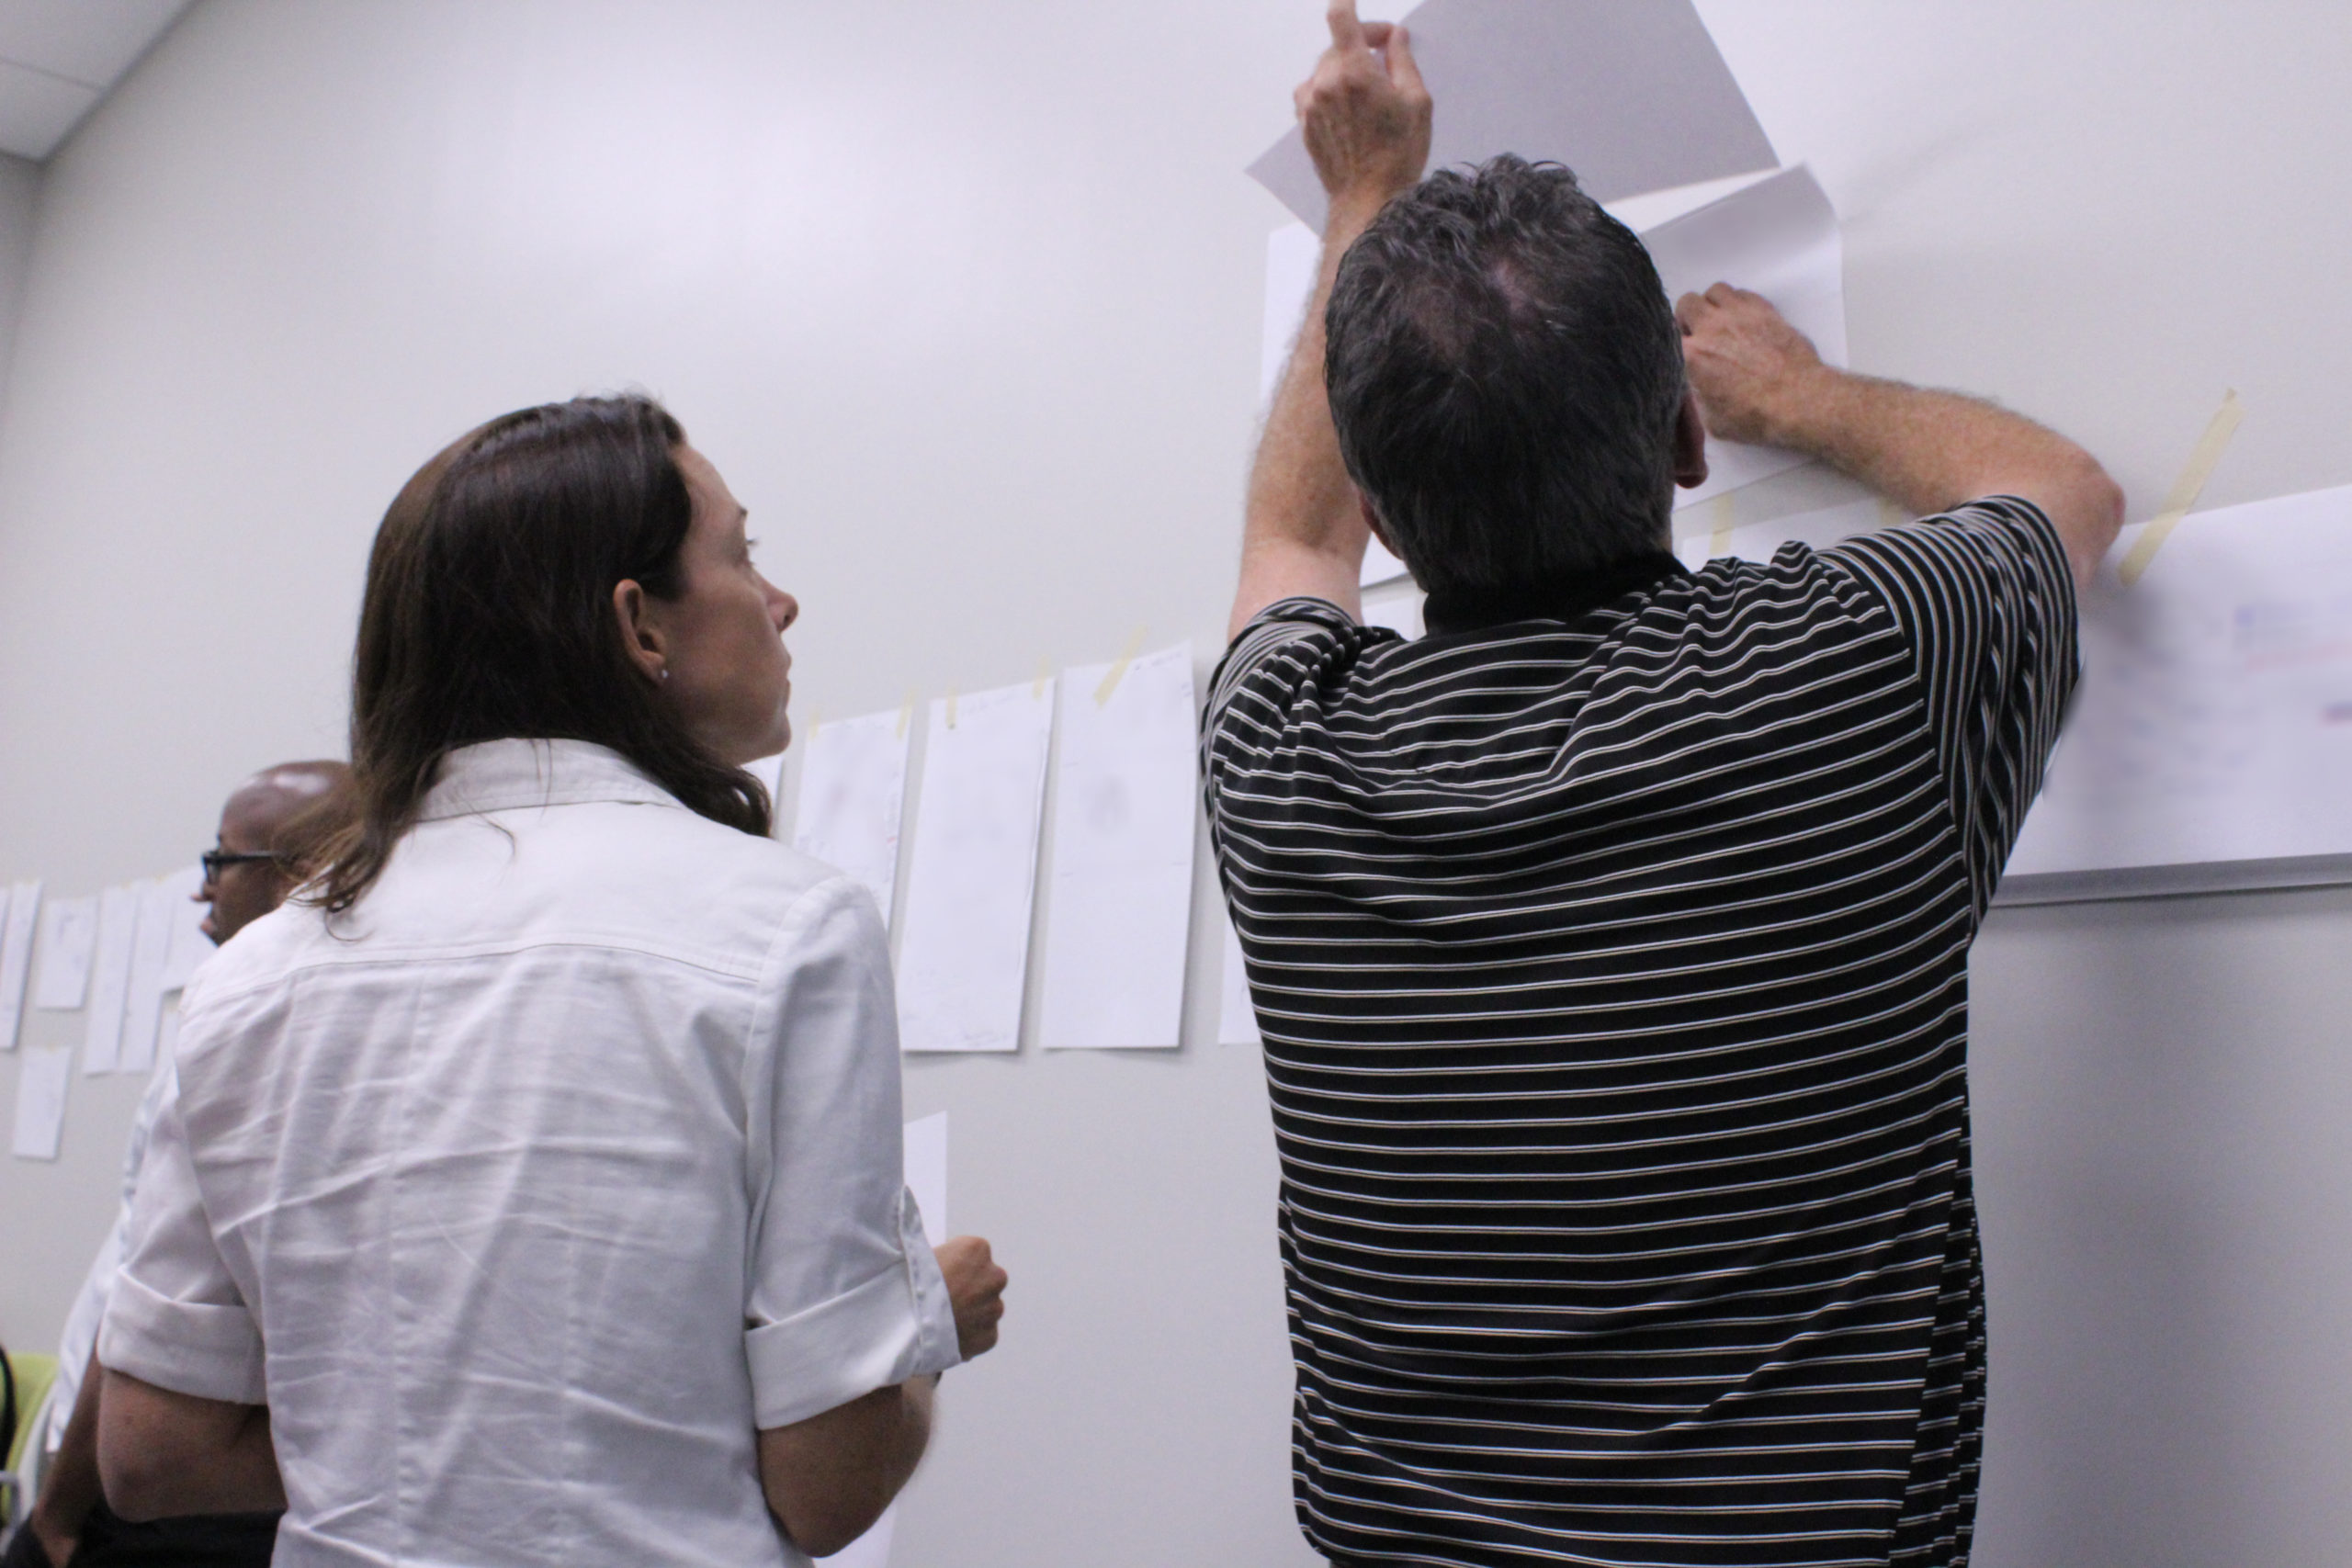 Researchers writing on paper at the Doolittle Institute